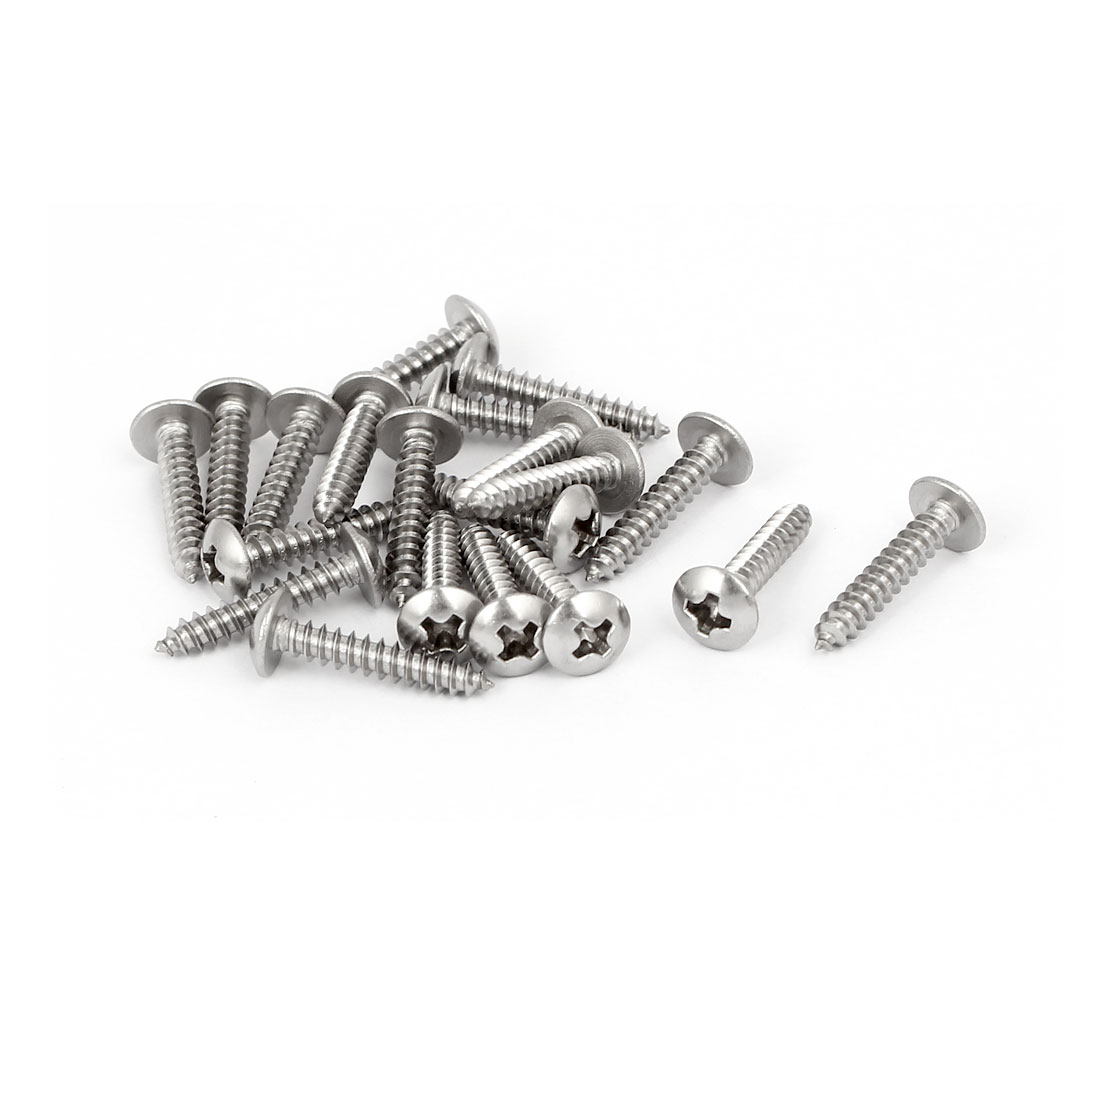 M3x16mm 316 Stainless Steel Truss Phillips Head Self Tapping Screws 20pcs